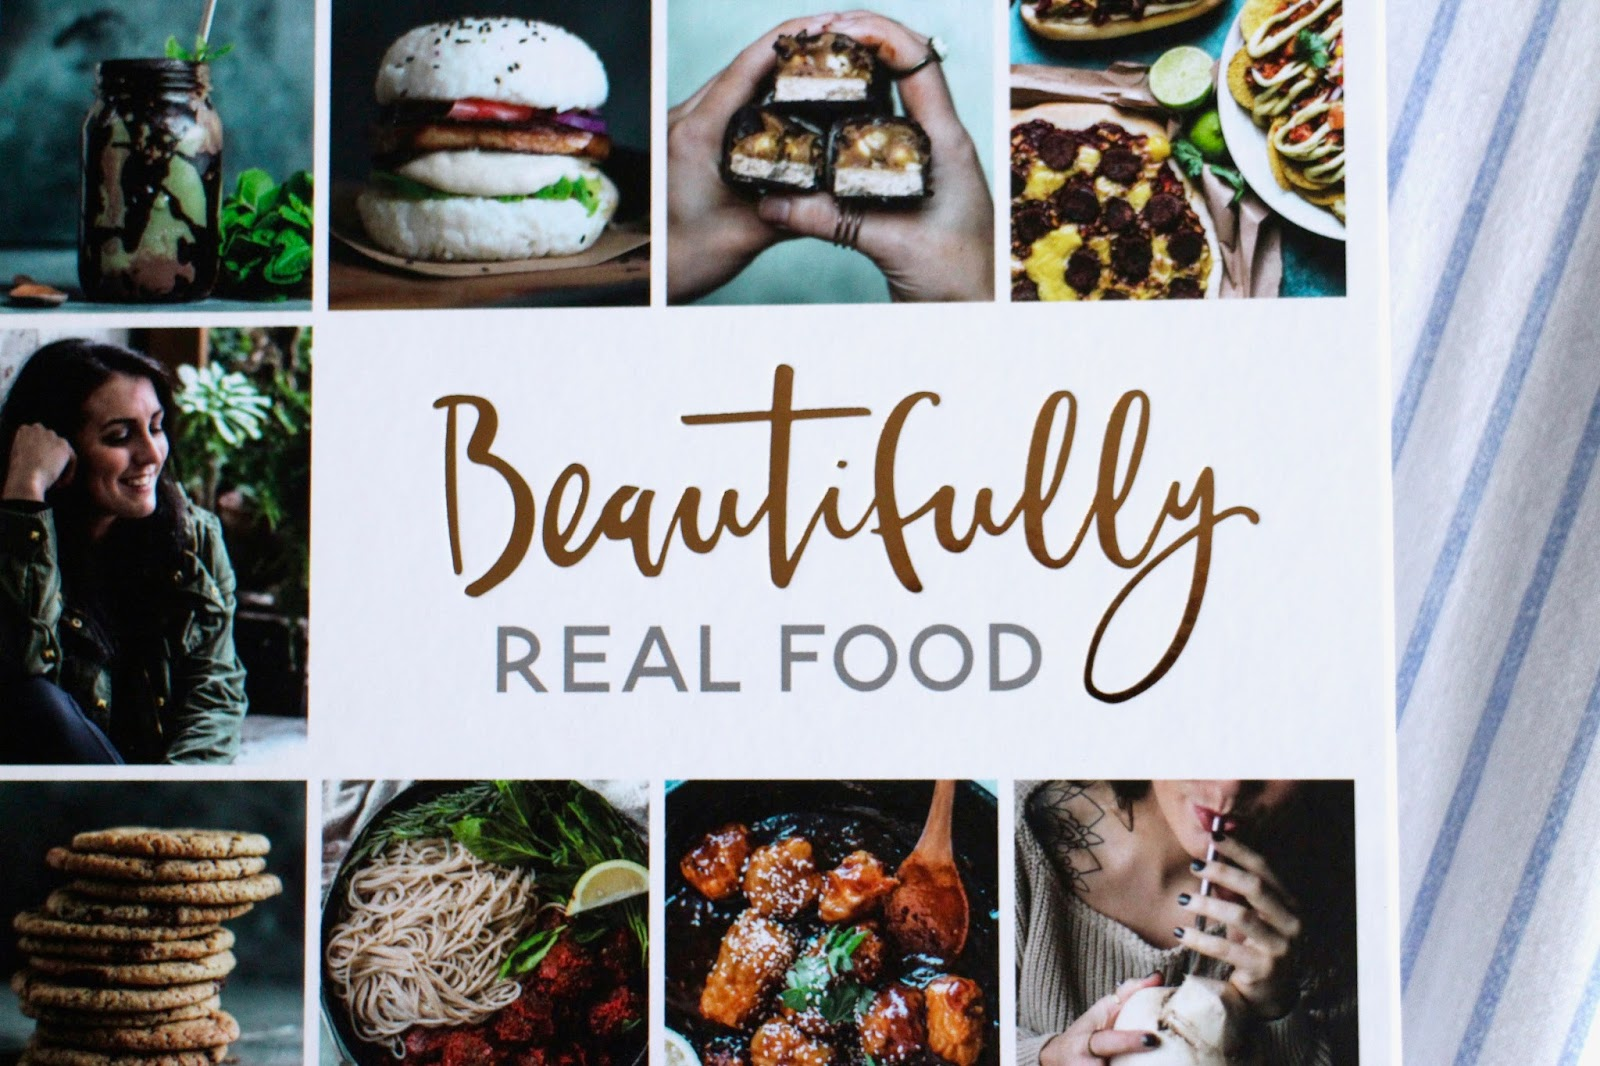 Beautifully real food by sam murphy ginger kitchen if i was ever to have my own cookbook a girl can dream then sam murphys new book is kinda exactly what i would have pictured its pretty beautiful and forumfinder Choice Image